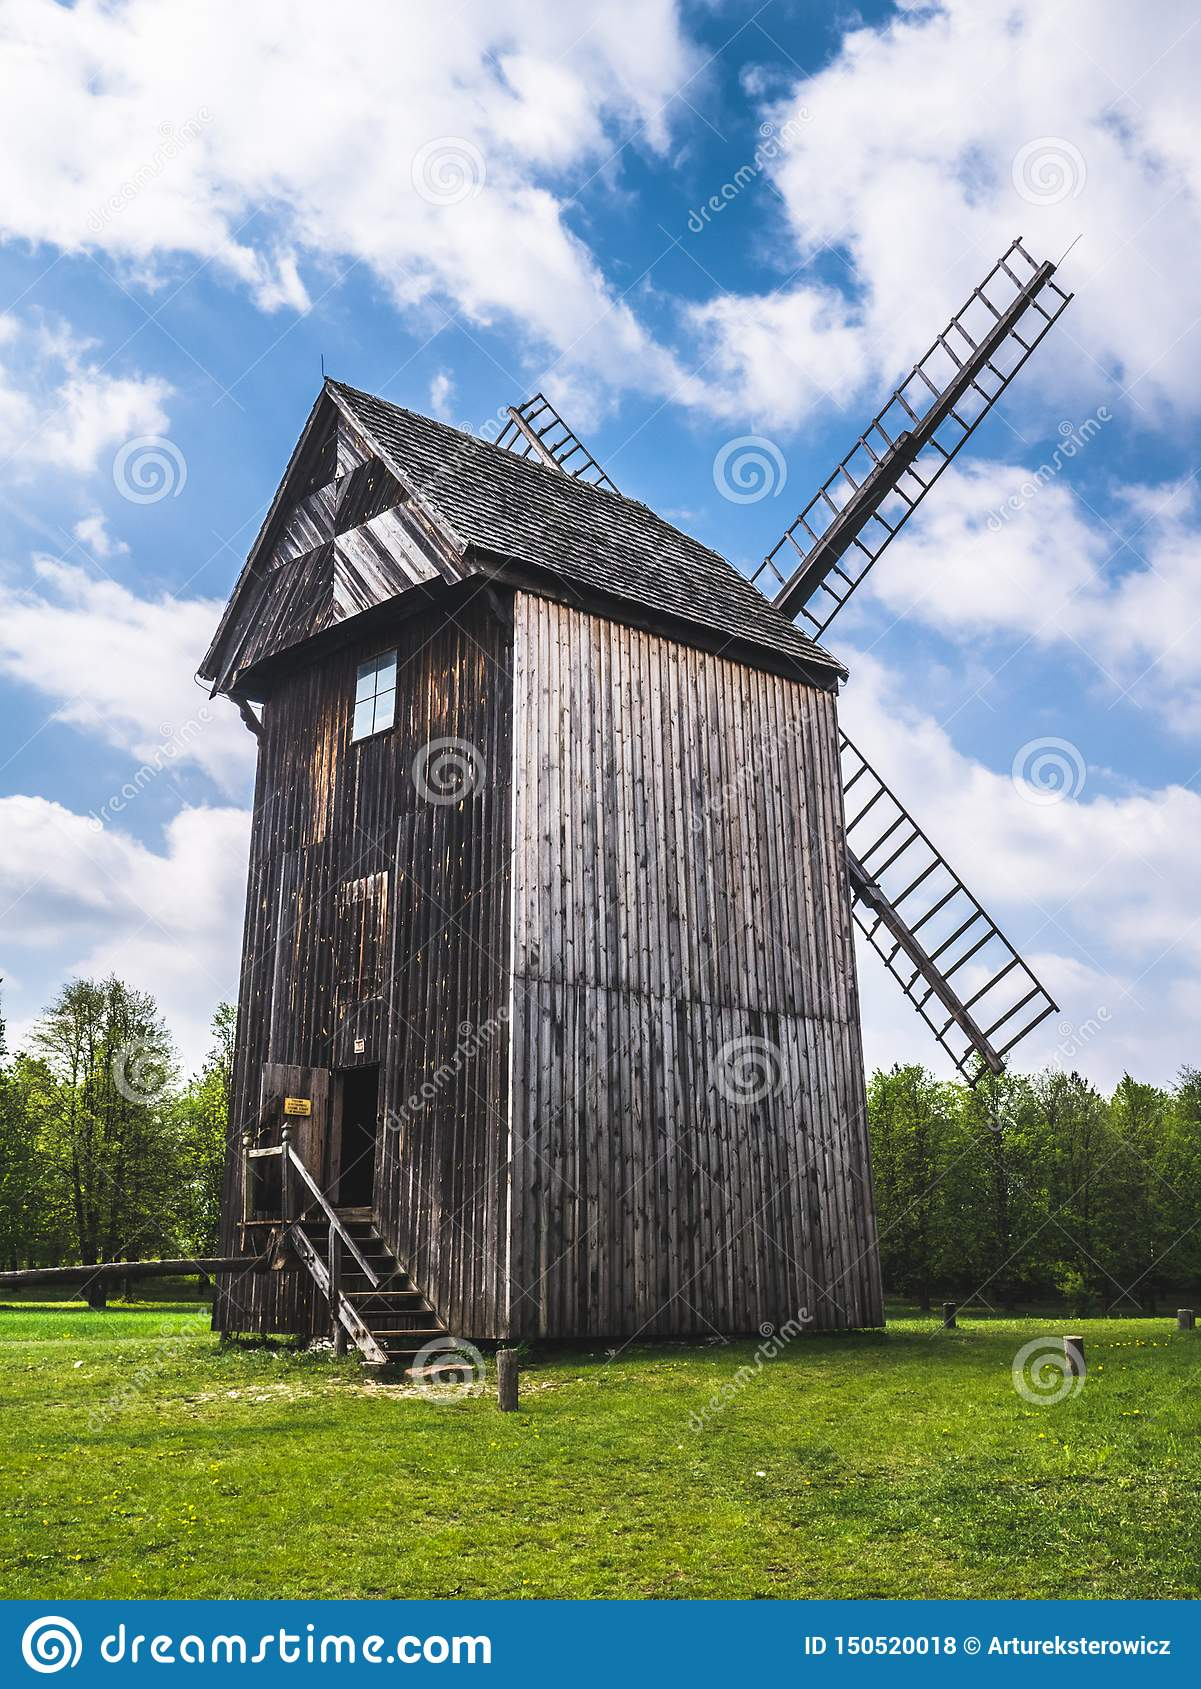 Old wooden mill in the countryside